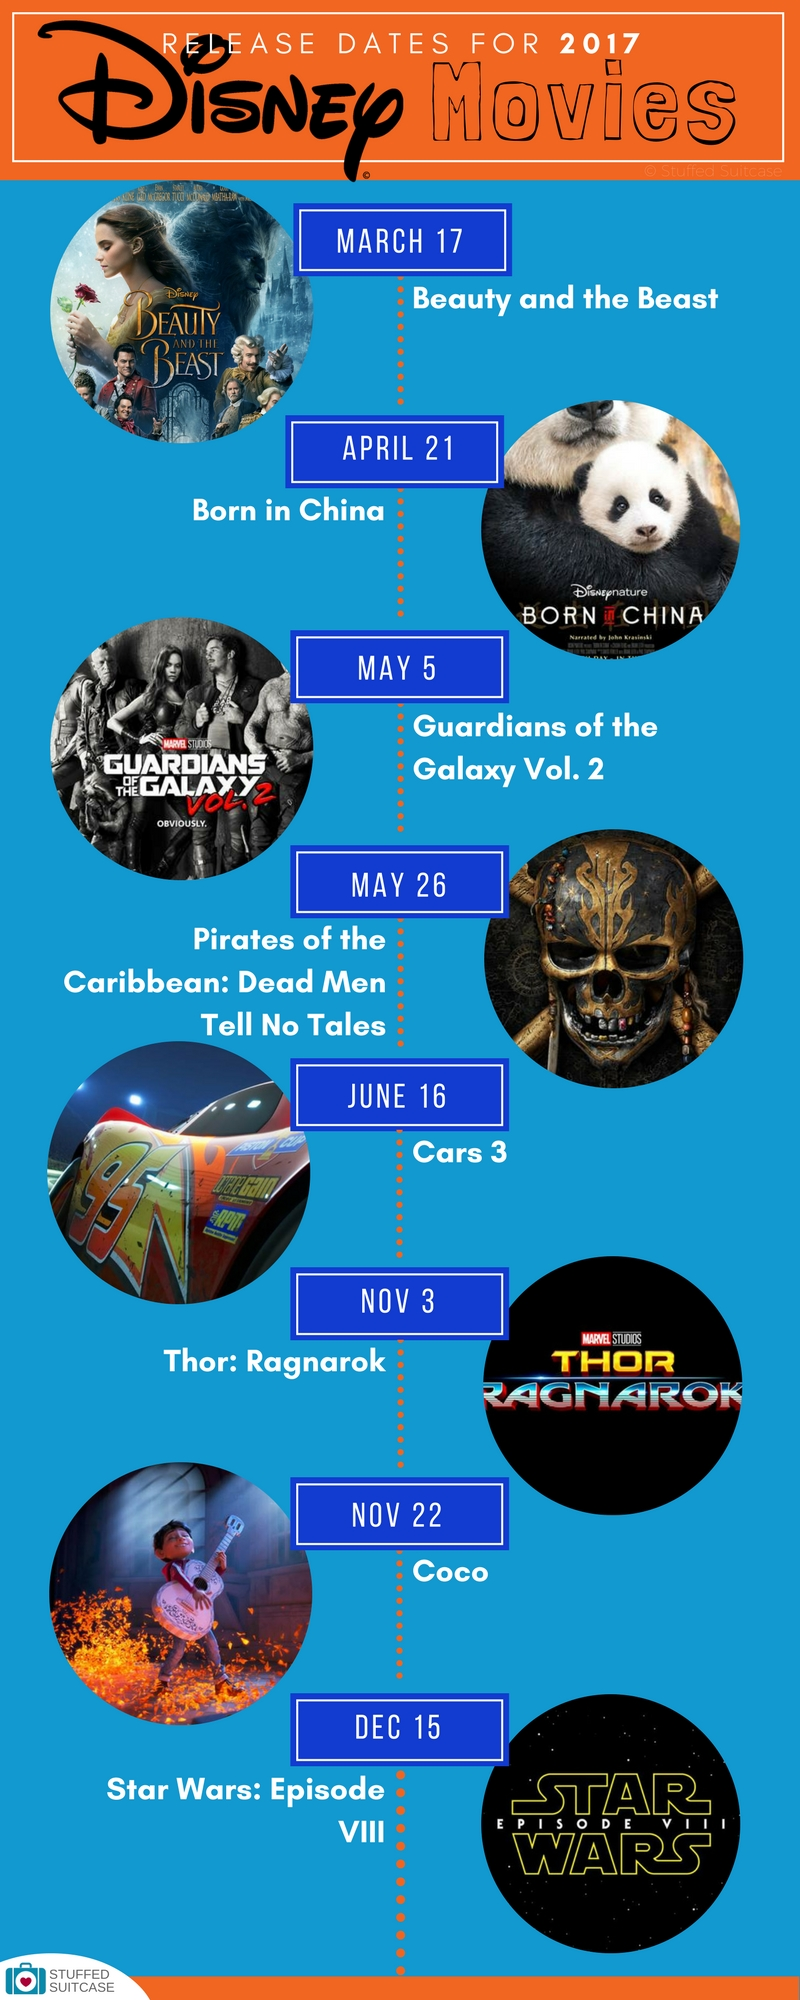 What Disney Movies are Coming Out in 2017?